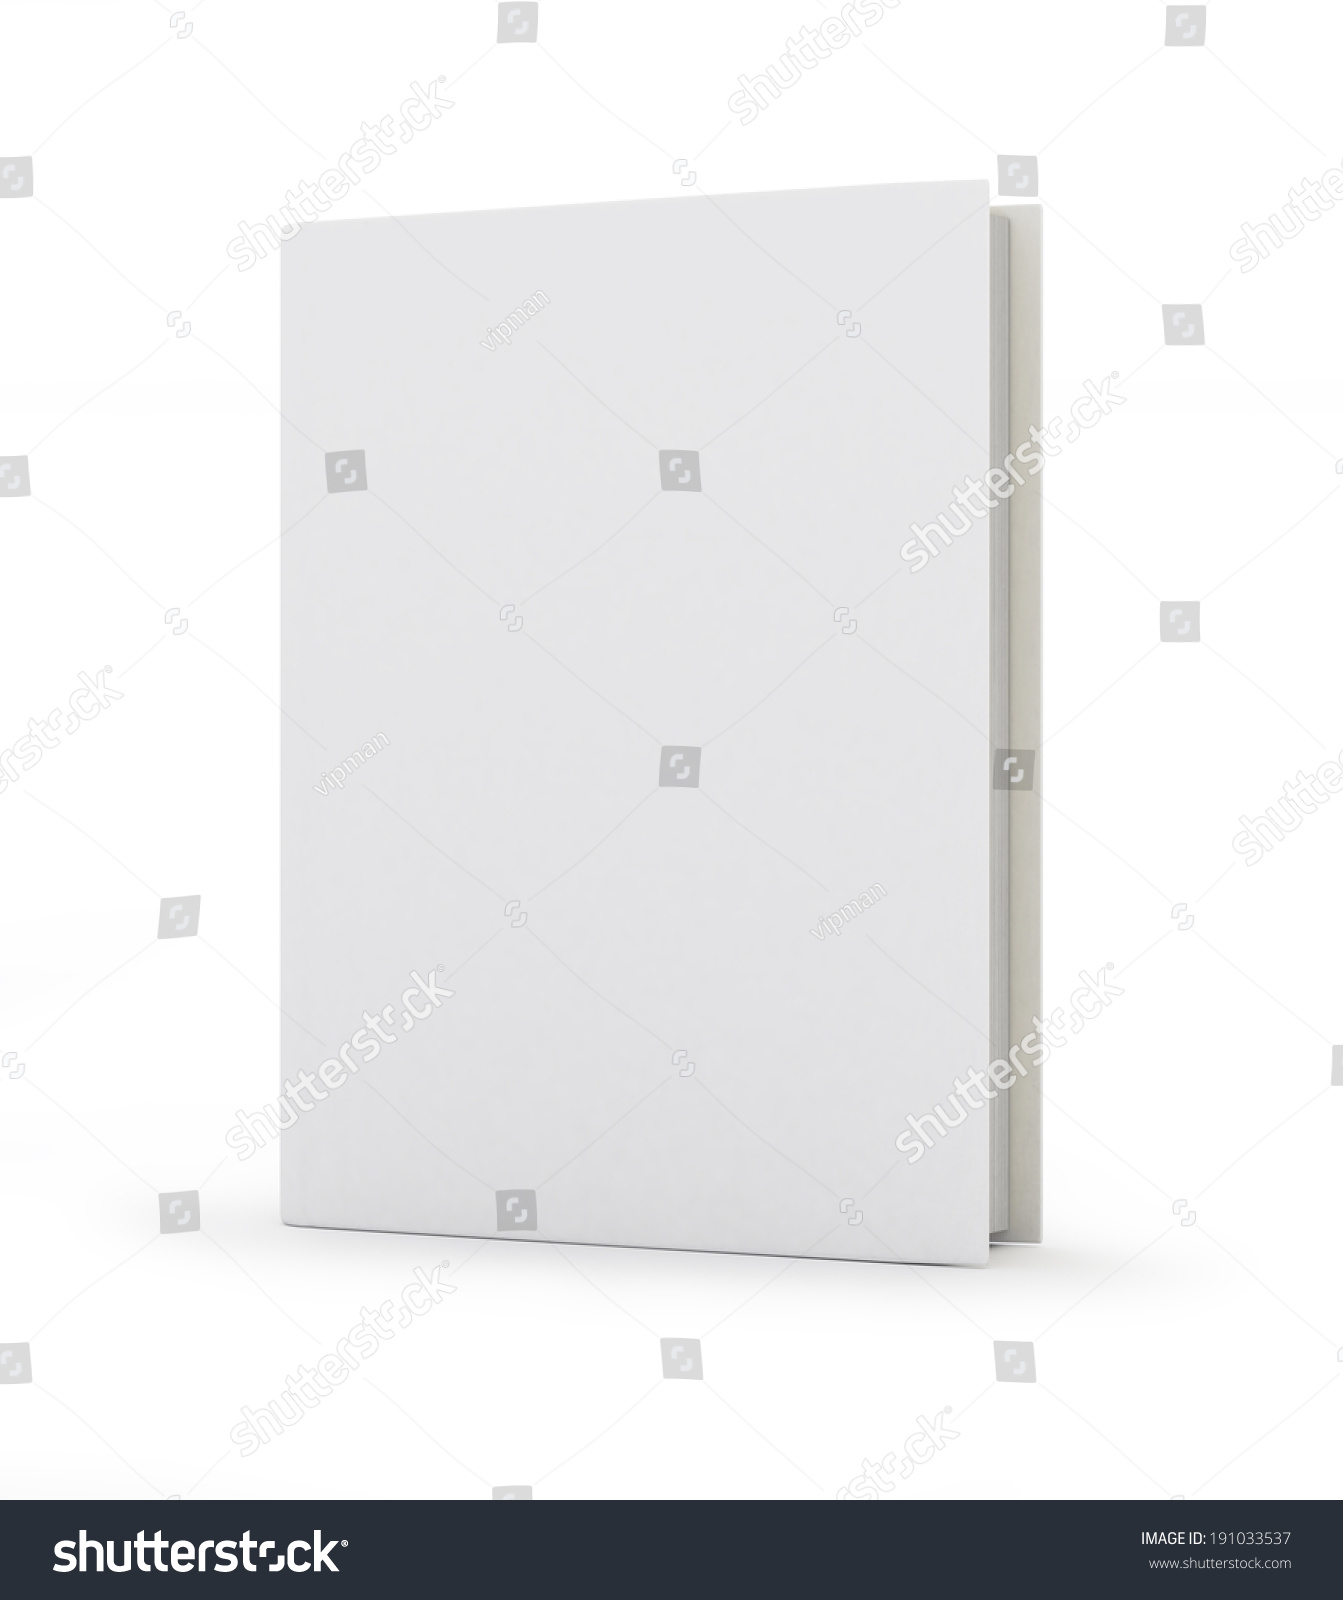 Blank Book Cover Background ~ Blank book cover over white background stock illustration